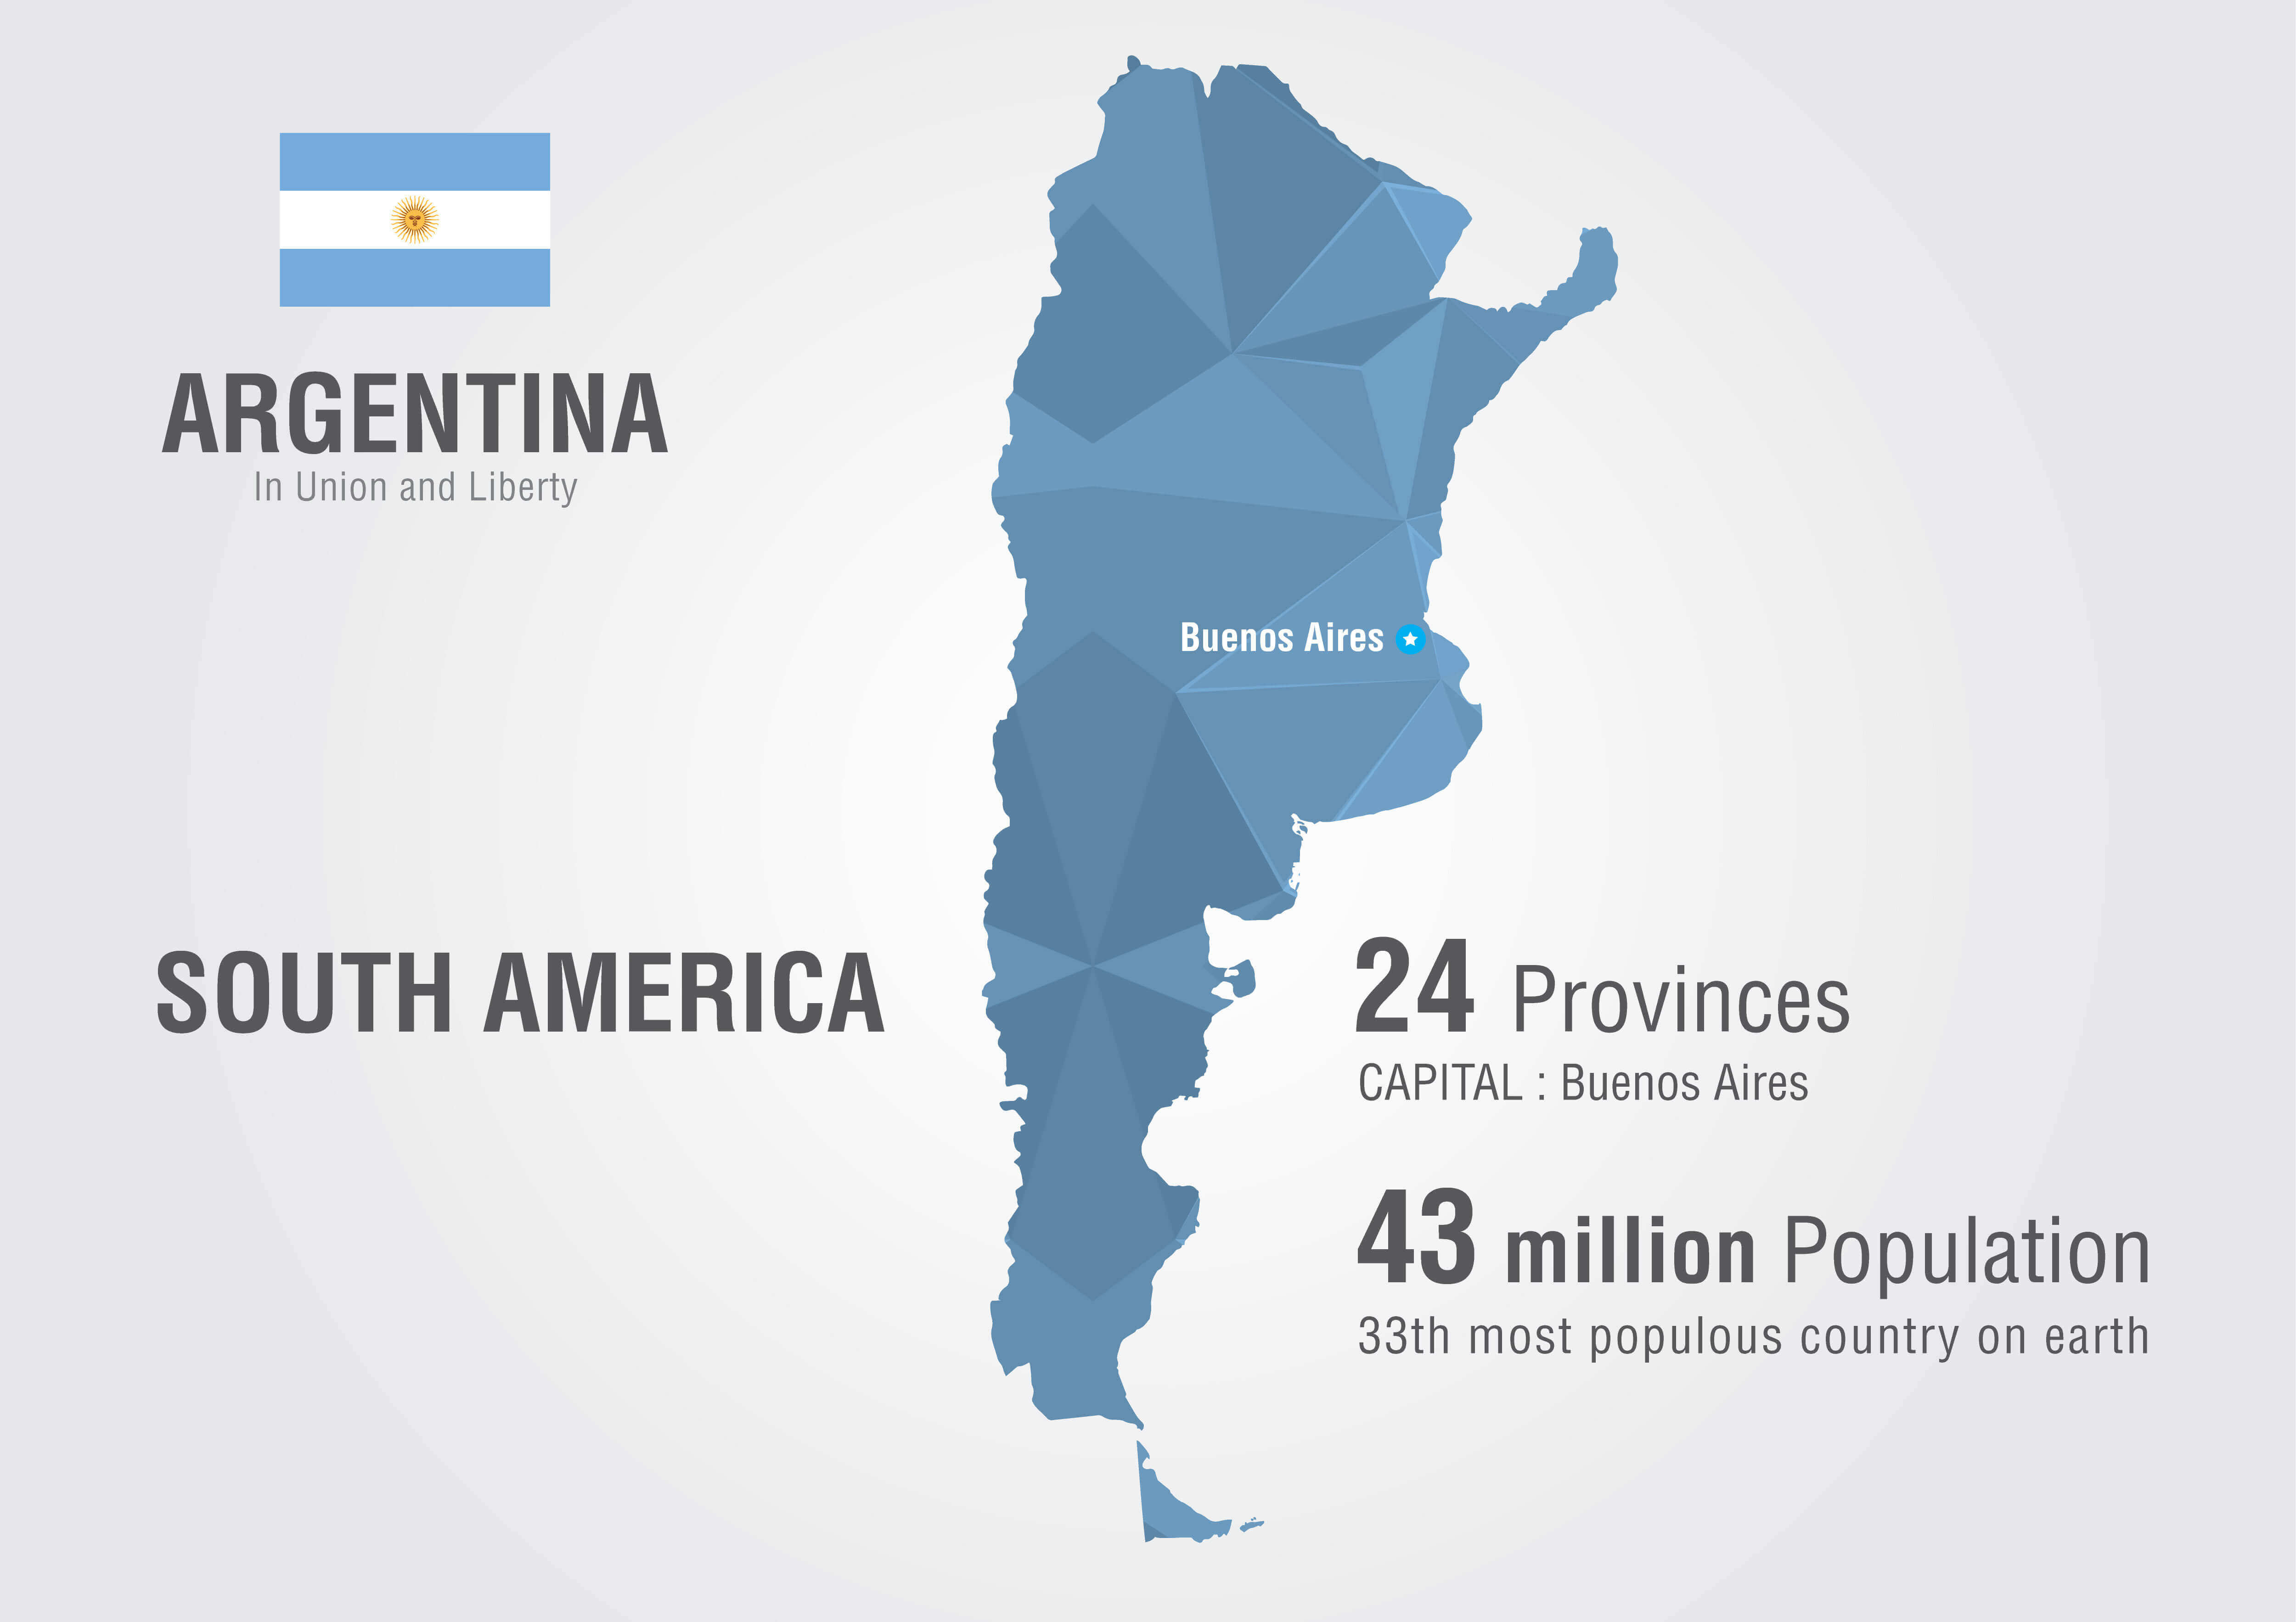 Argentina Map with South America